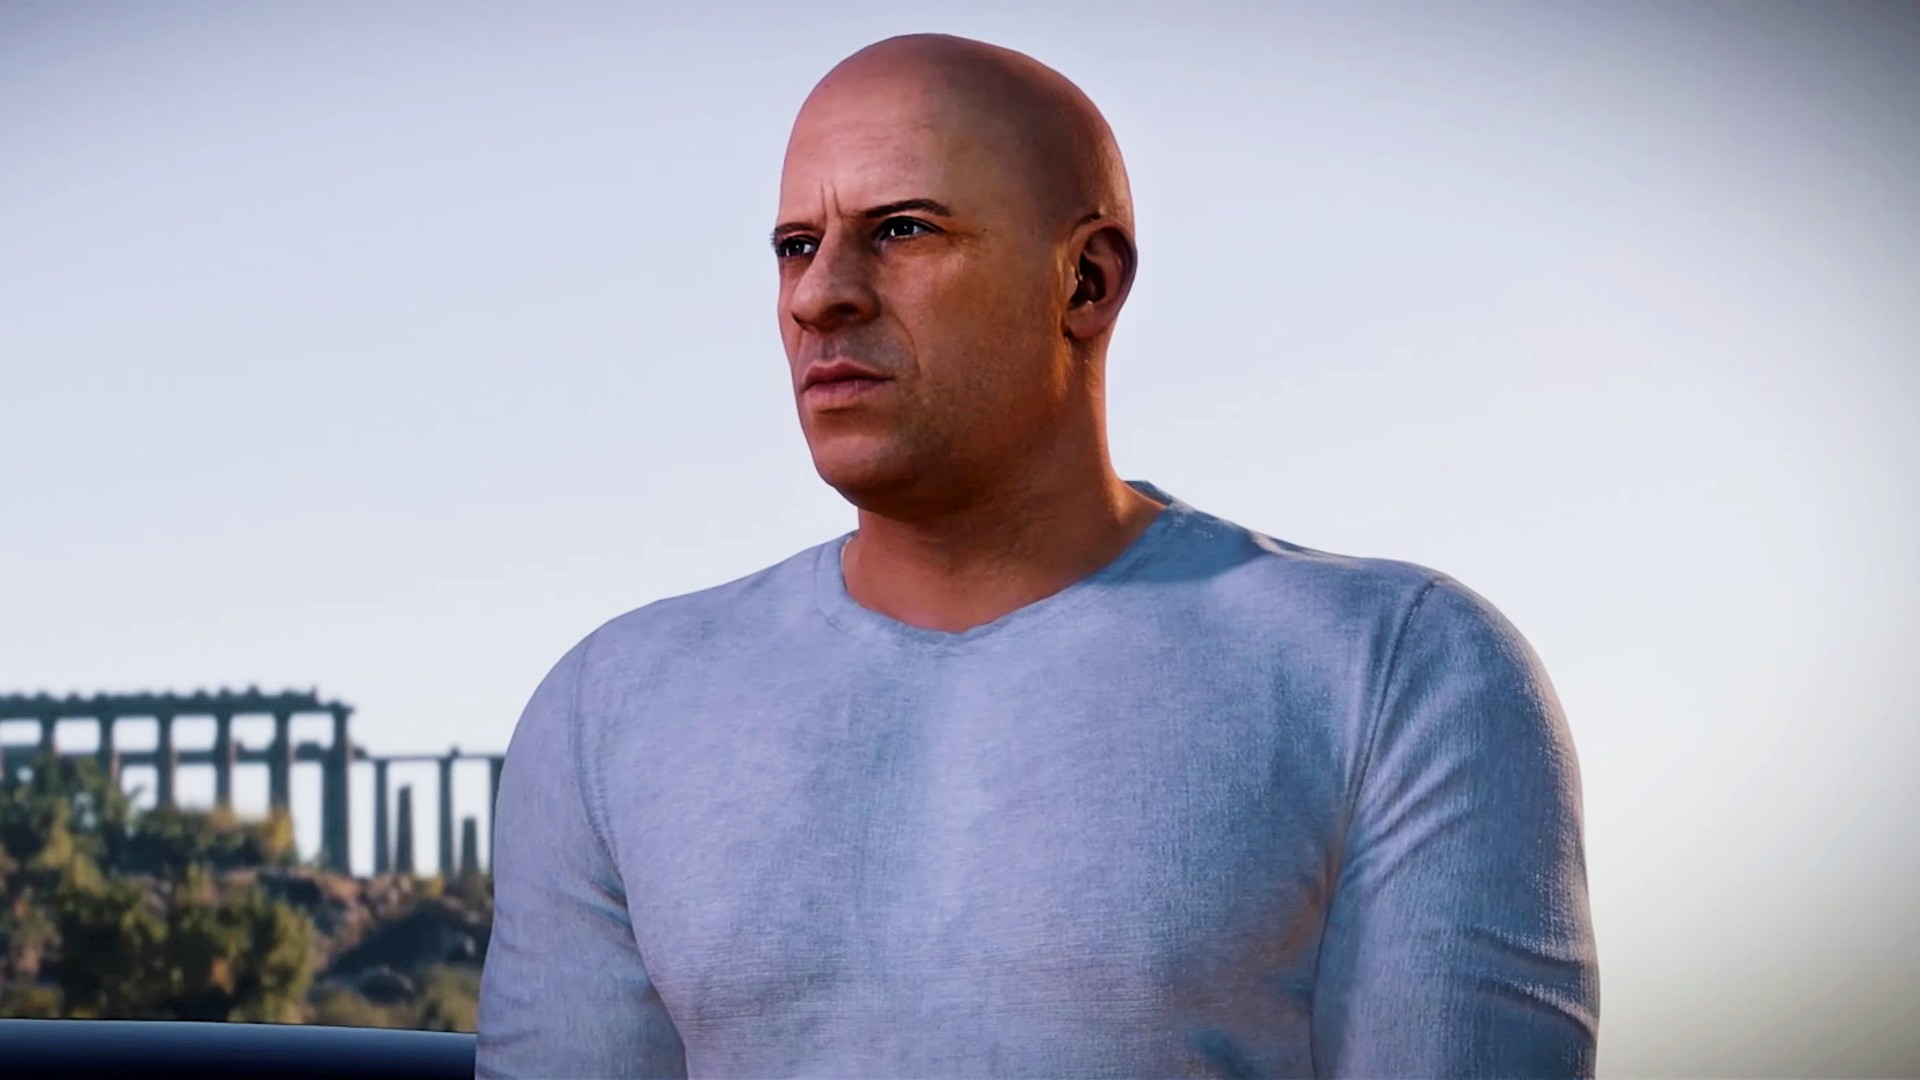 That daft Fast and Furious meme has come to videogames